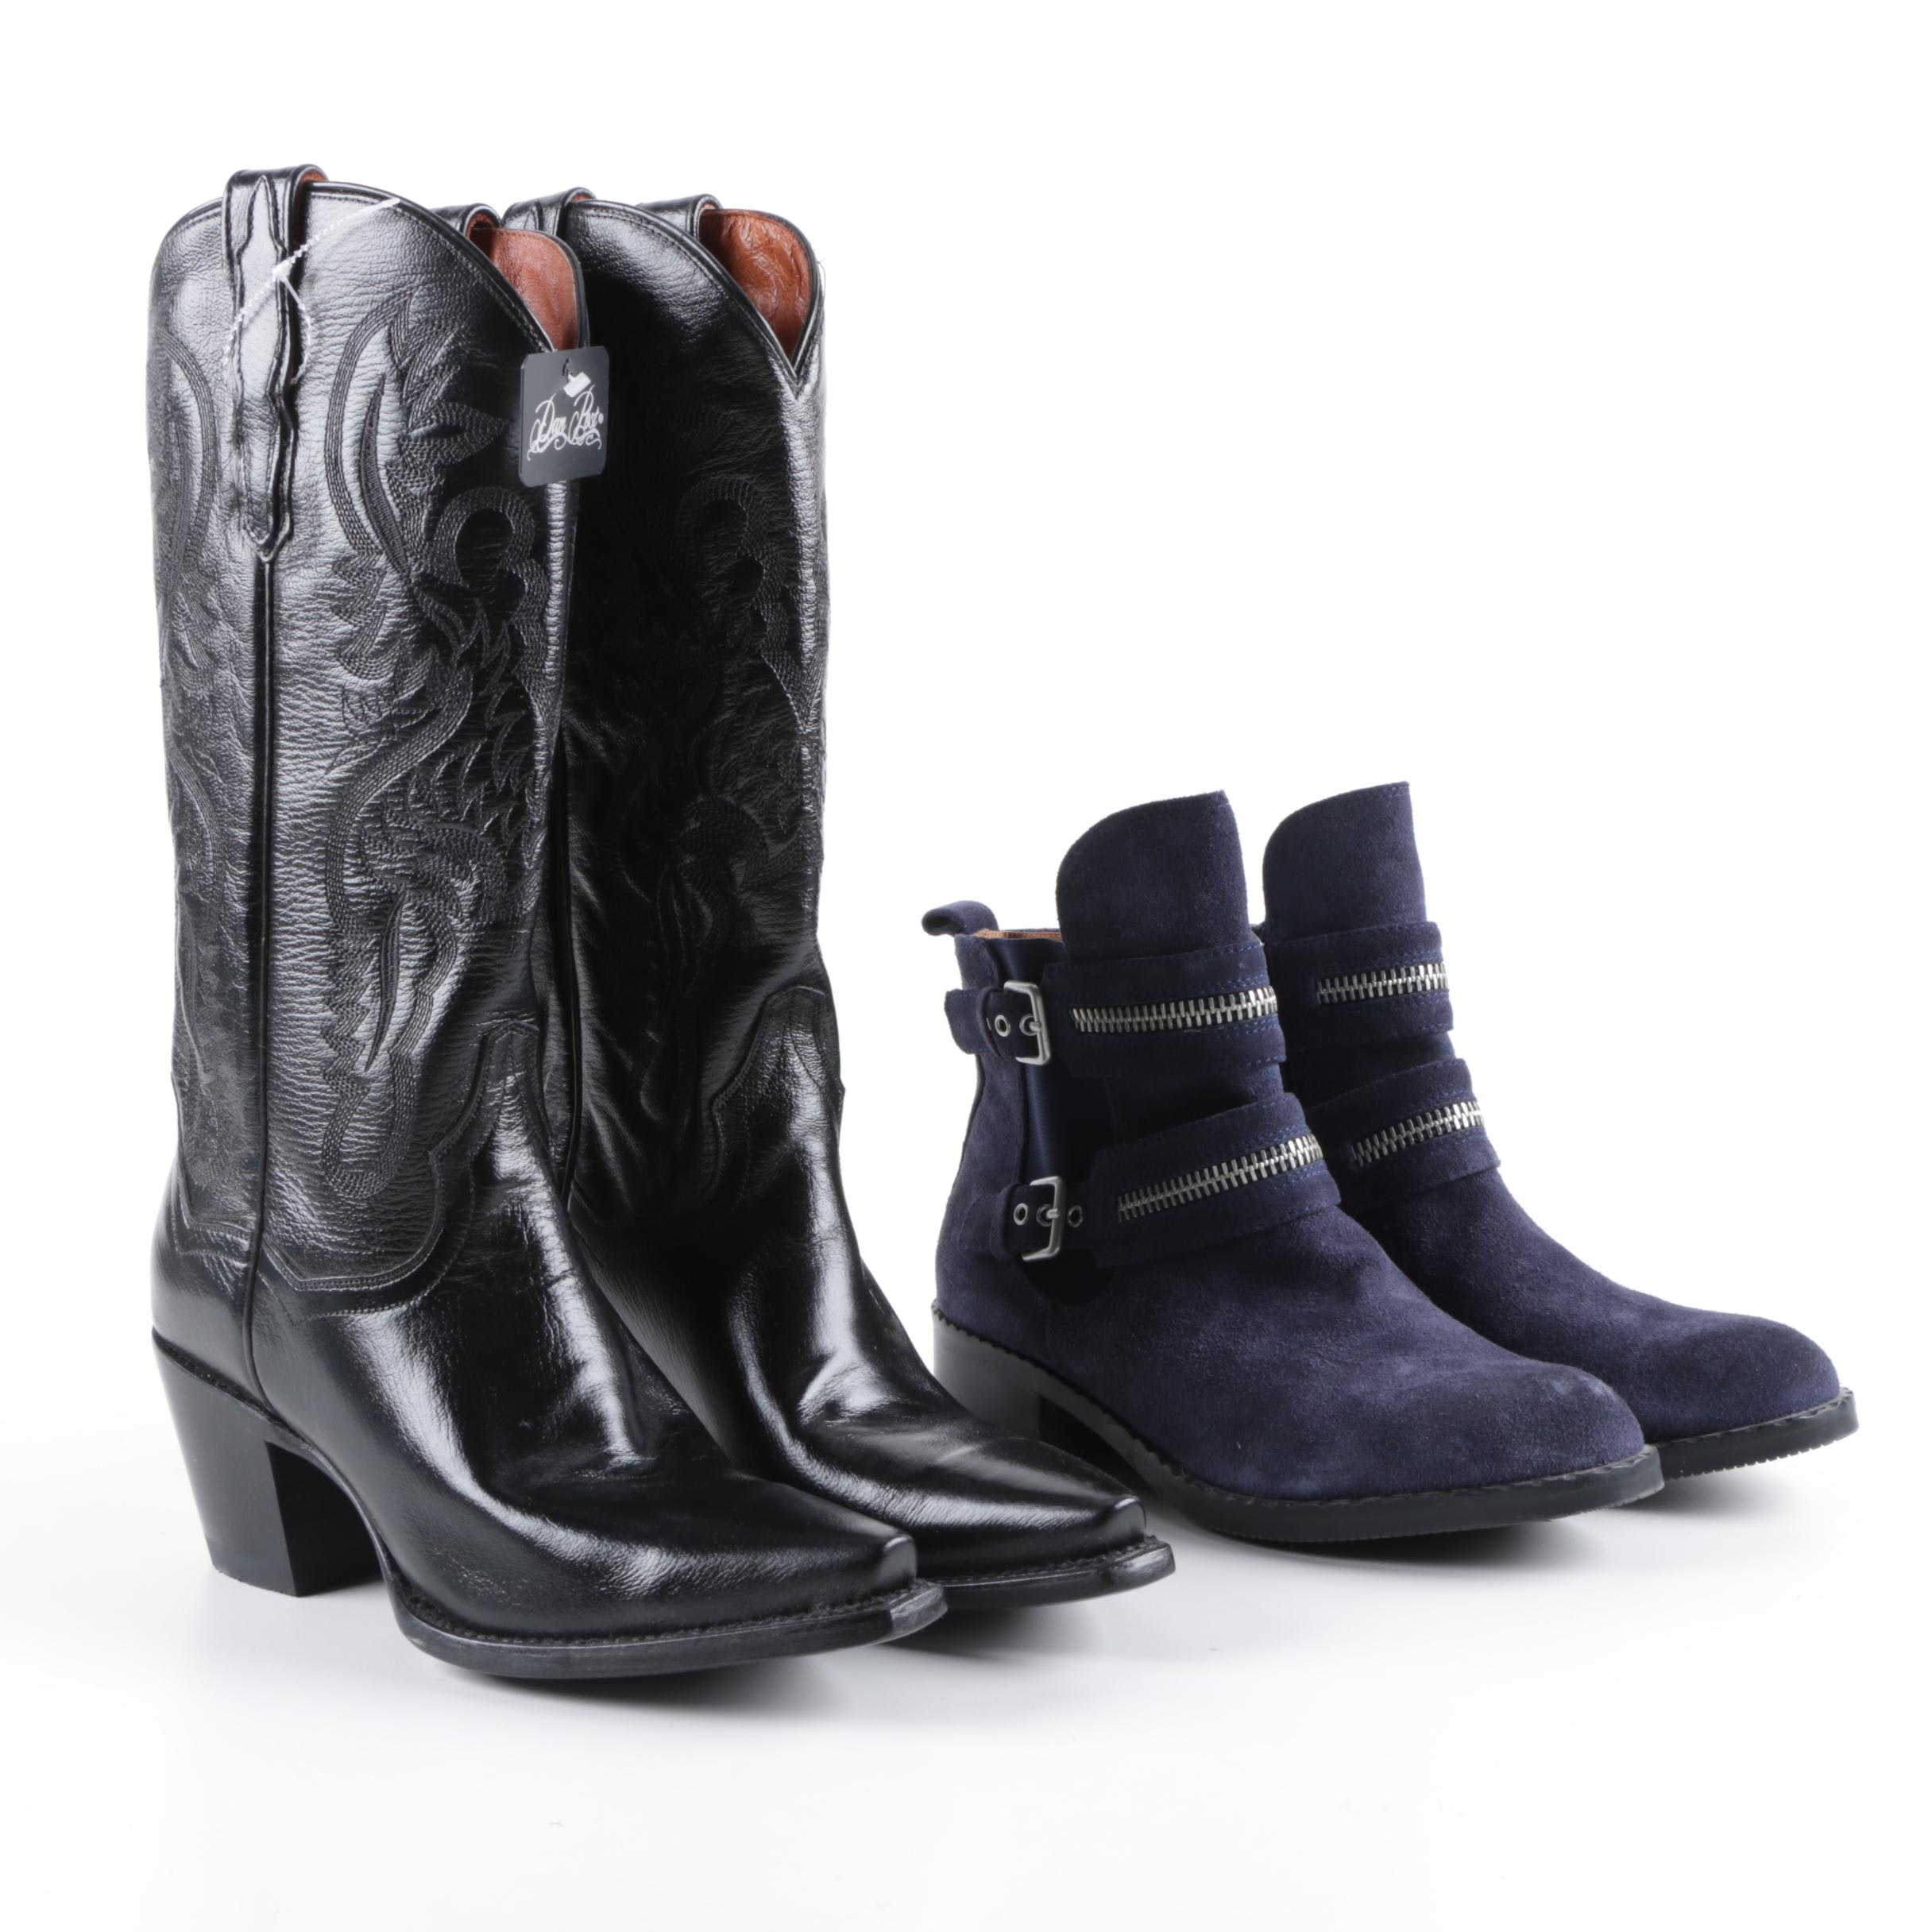 Women's Dan Post Leather Western Boots and Kenneth Cole Blue Suede Ankle Boots